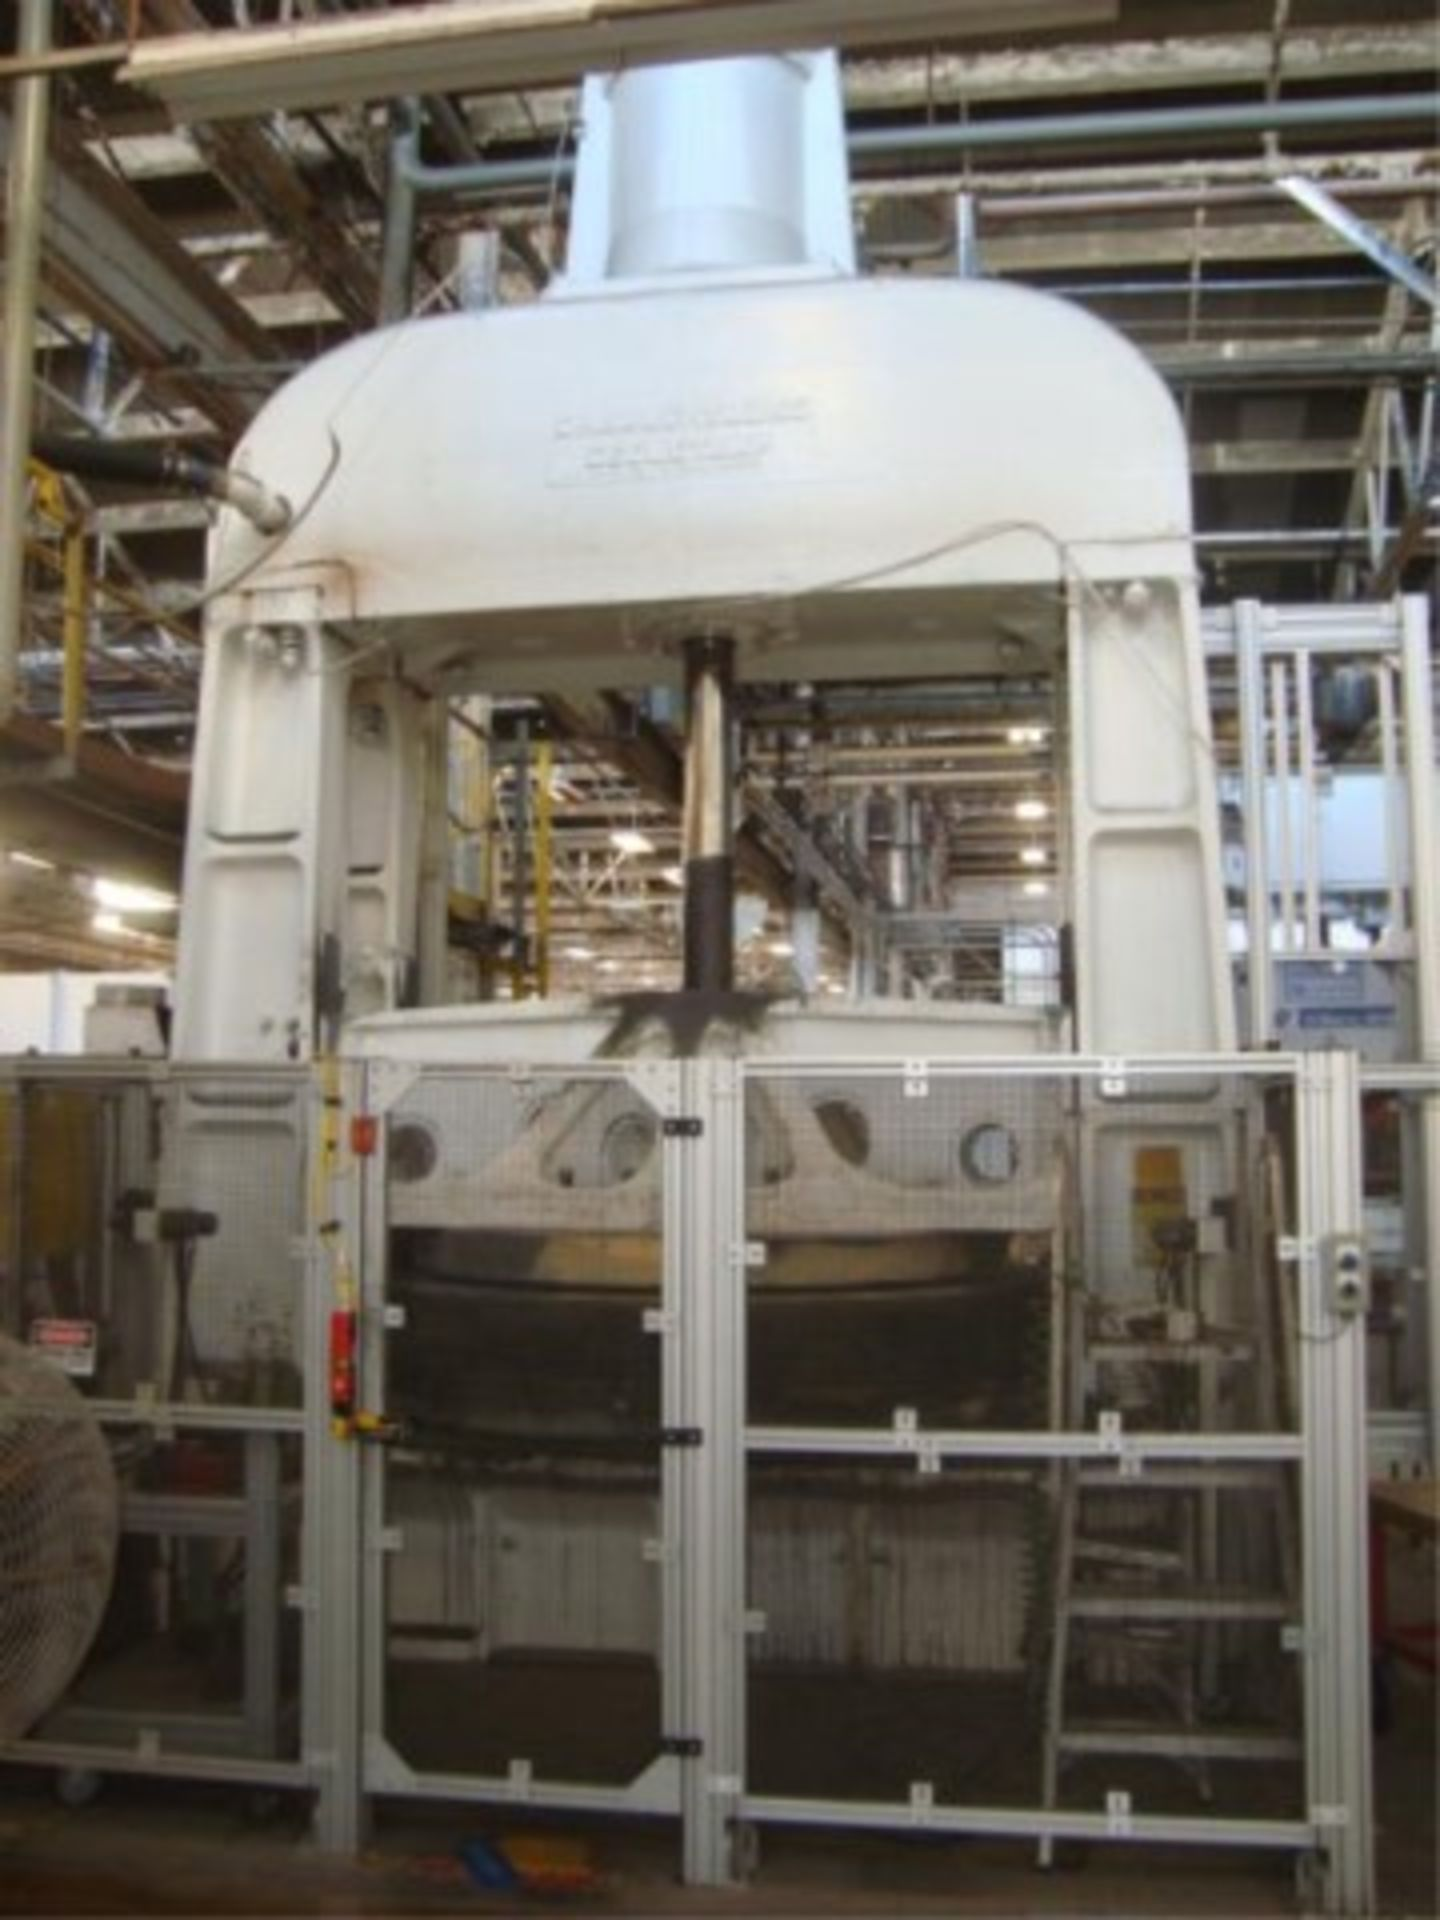 Lot 131 - Hydraulic Press, 42,500 ft/lbs. Max Energy